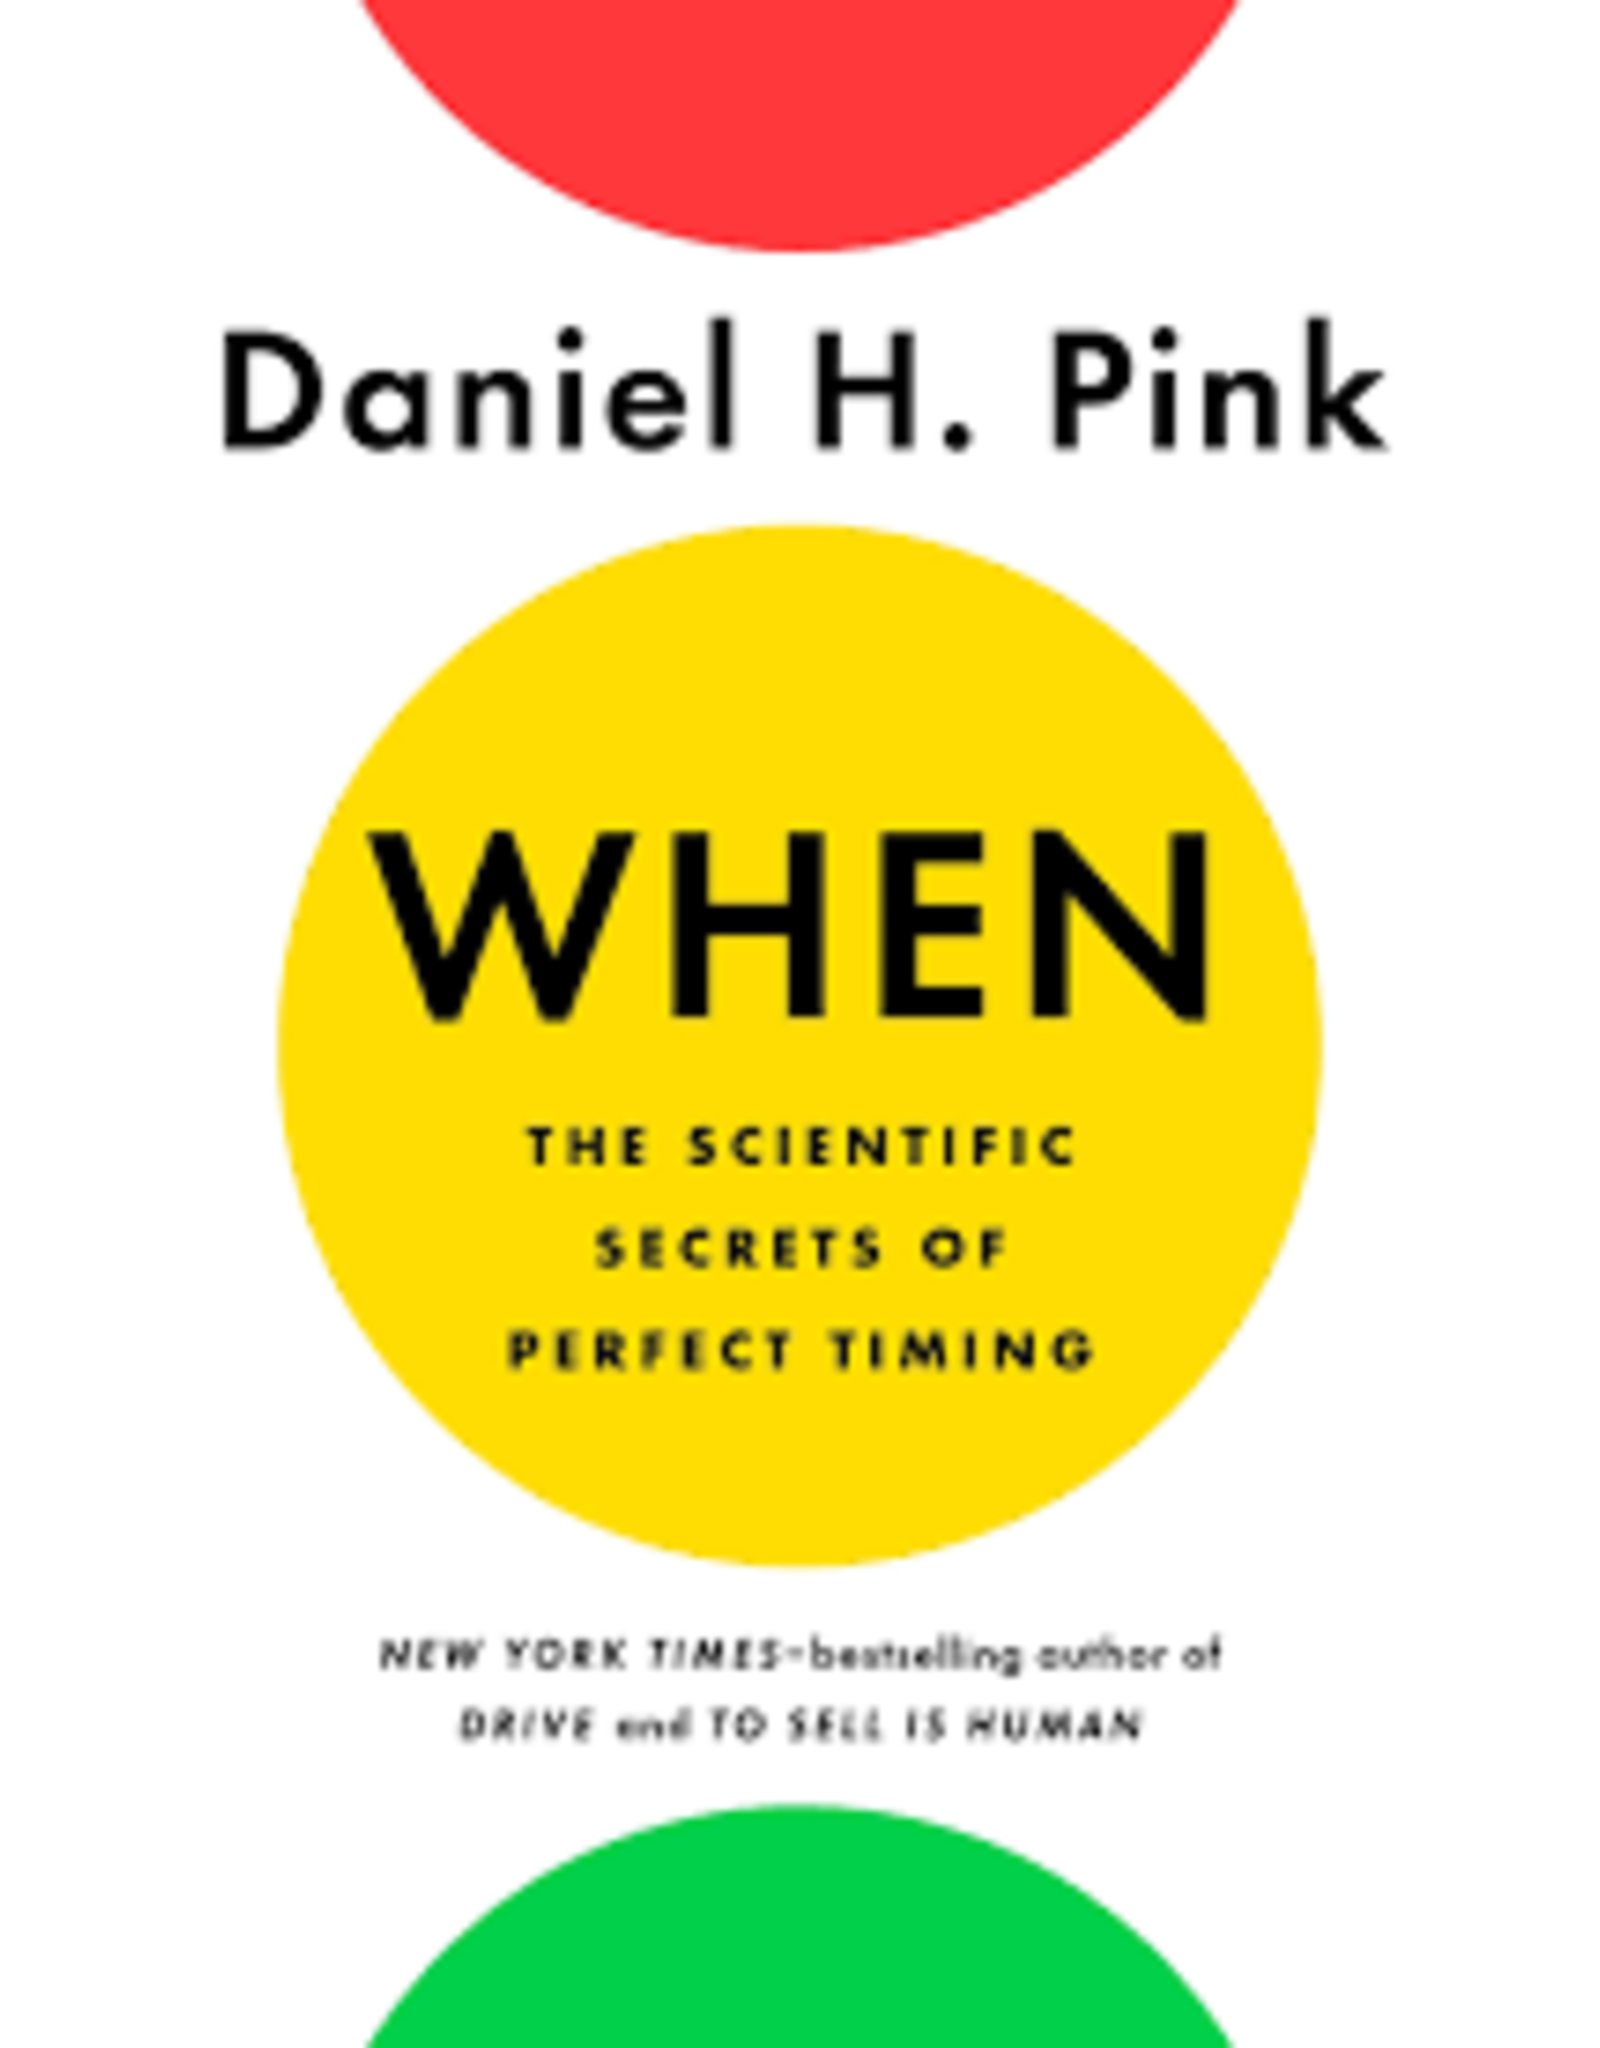 Books When: The Scientific Secrets of Perfect Timing by Daniel H. Pink